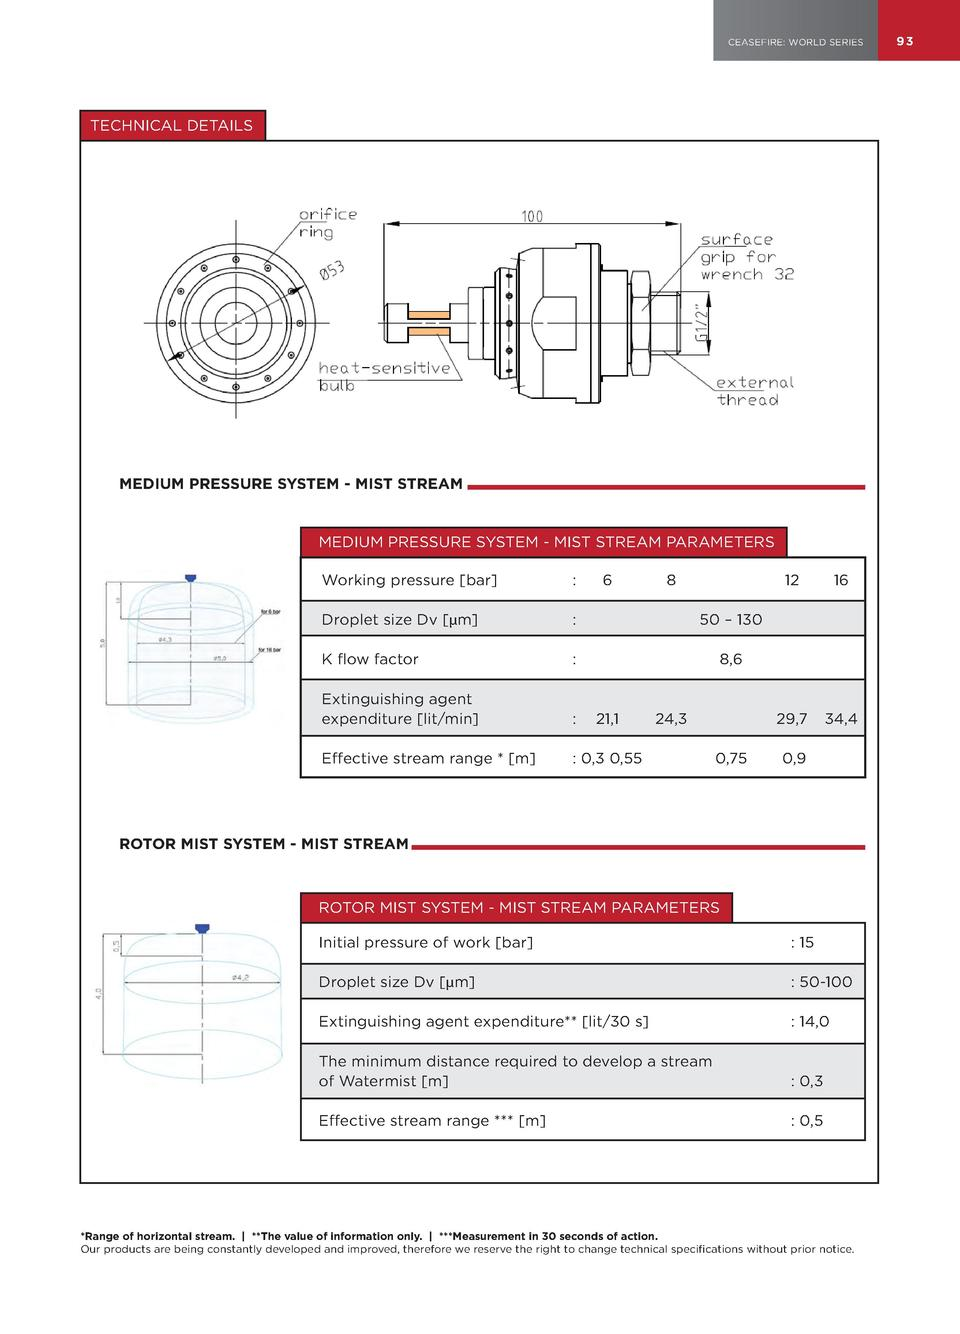 CEASEFIRE  WORLD SERIES  93  TECHNICAL DETAILS  MEDIUM PRESSURE SYSTEM - MIST STREAM  MEDIUM PRESSURE SYSTEM - MIST STREAM...